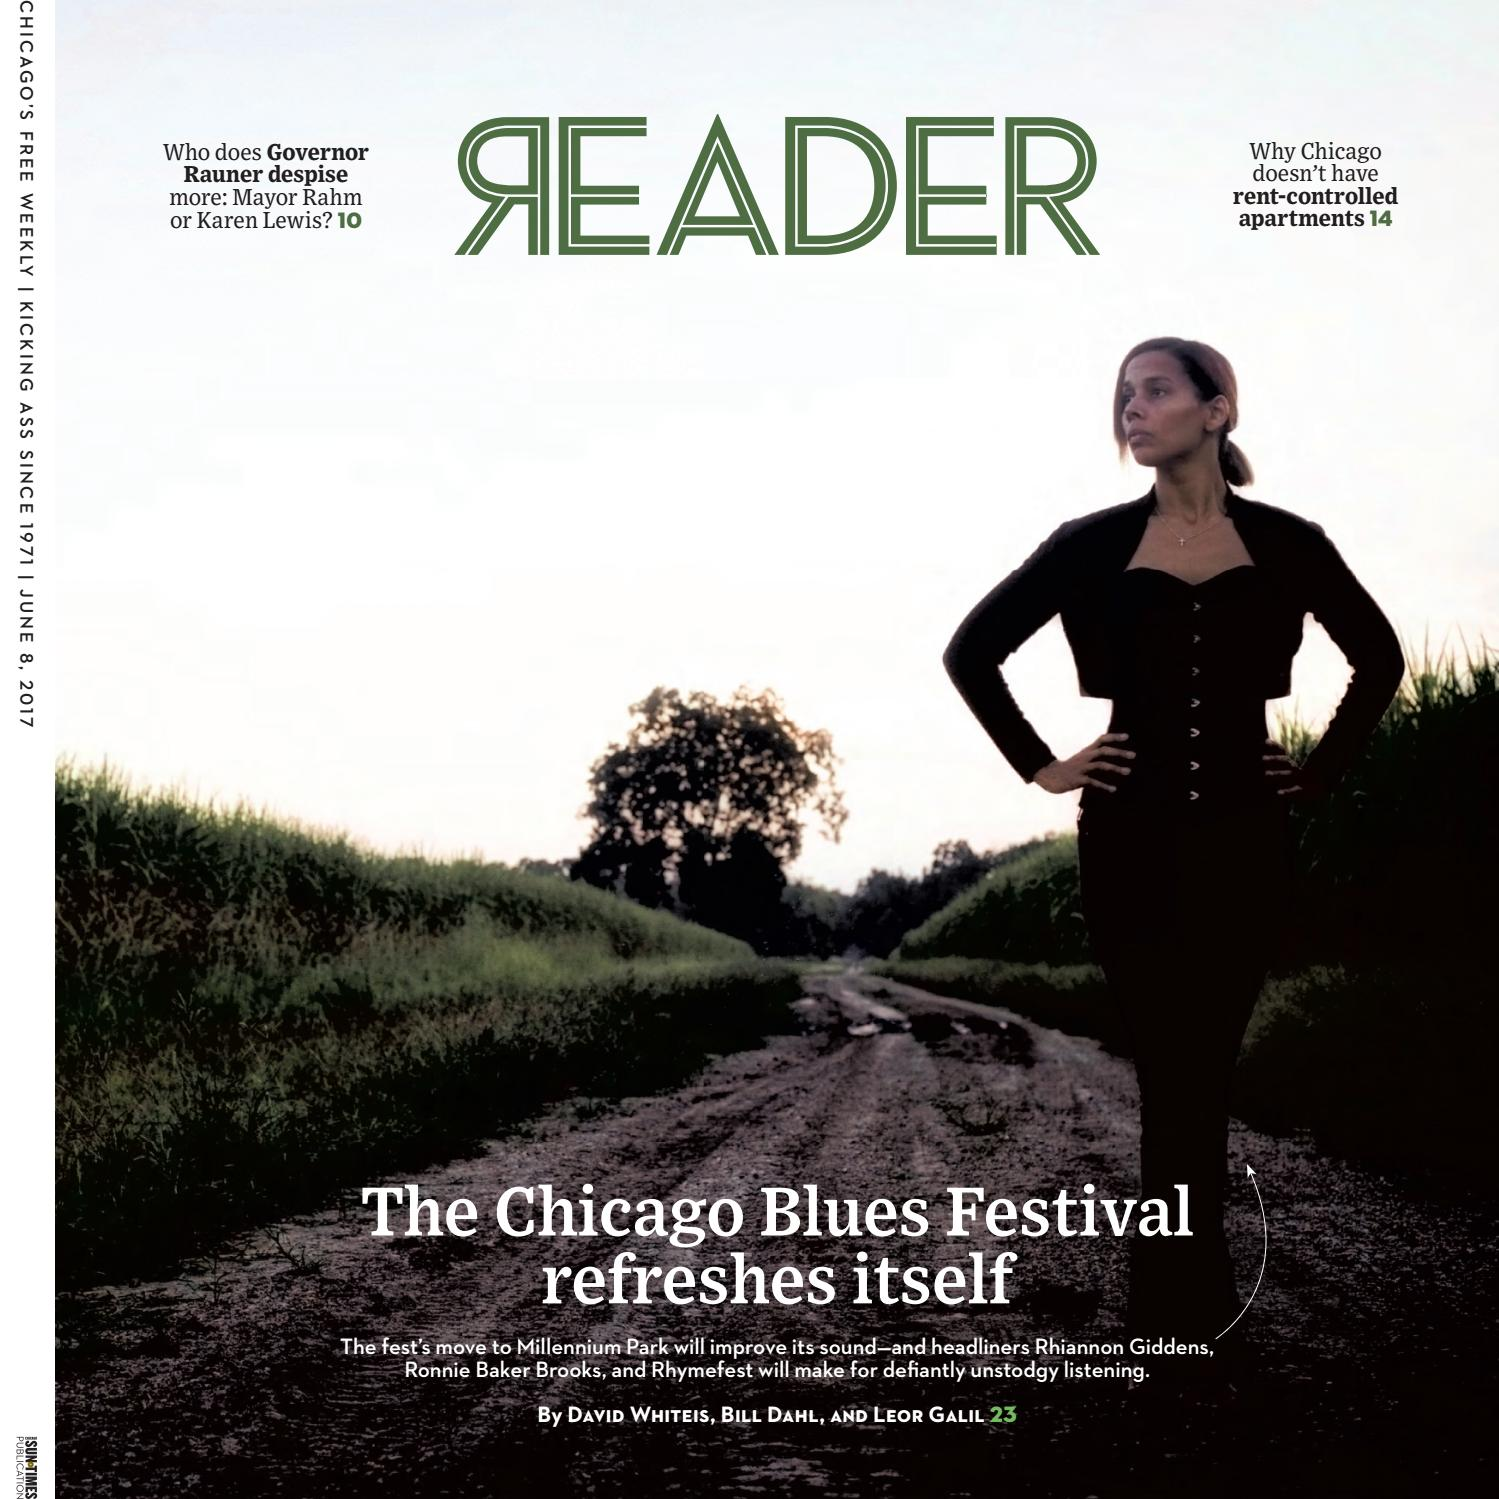 65a43416ec Print Issue of June 8, 2017 (Volume 46, Number 35) by Chicago Reader - issuu